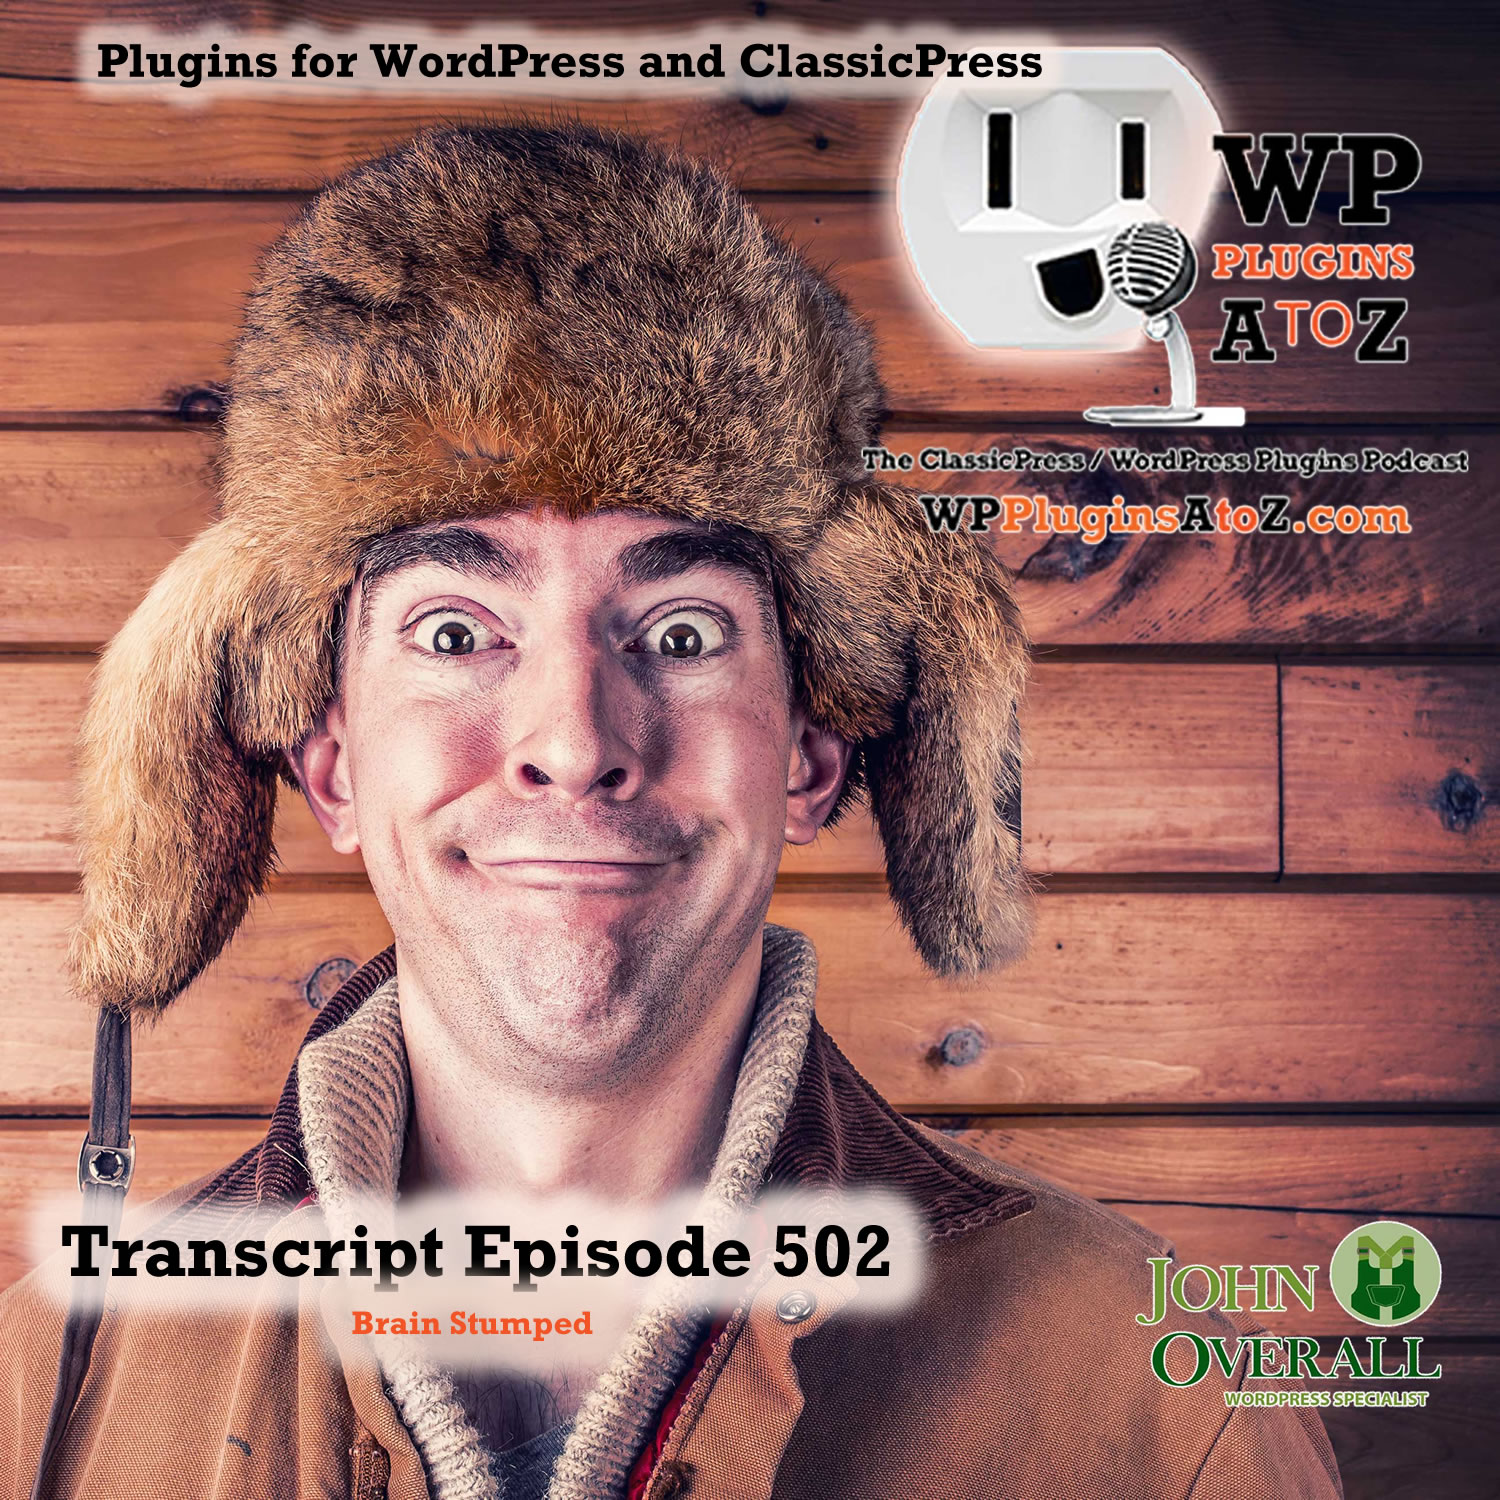 Brain Stumped It's Episode 502 - We have plugins for Wasting Time, Shipping Goods, Random Text, Meetings, Logs, Teasing the AI....., and ClassicPress Options. It's all coming up on WordPress Plugins A-Z!